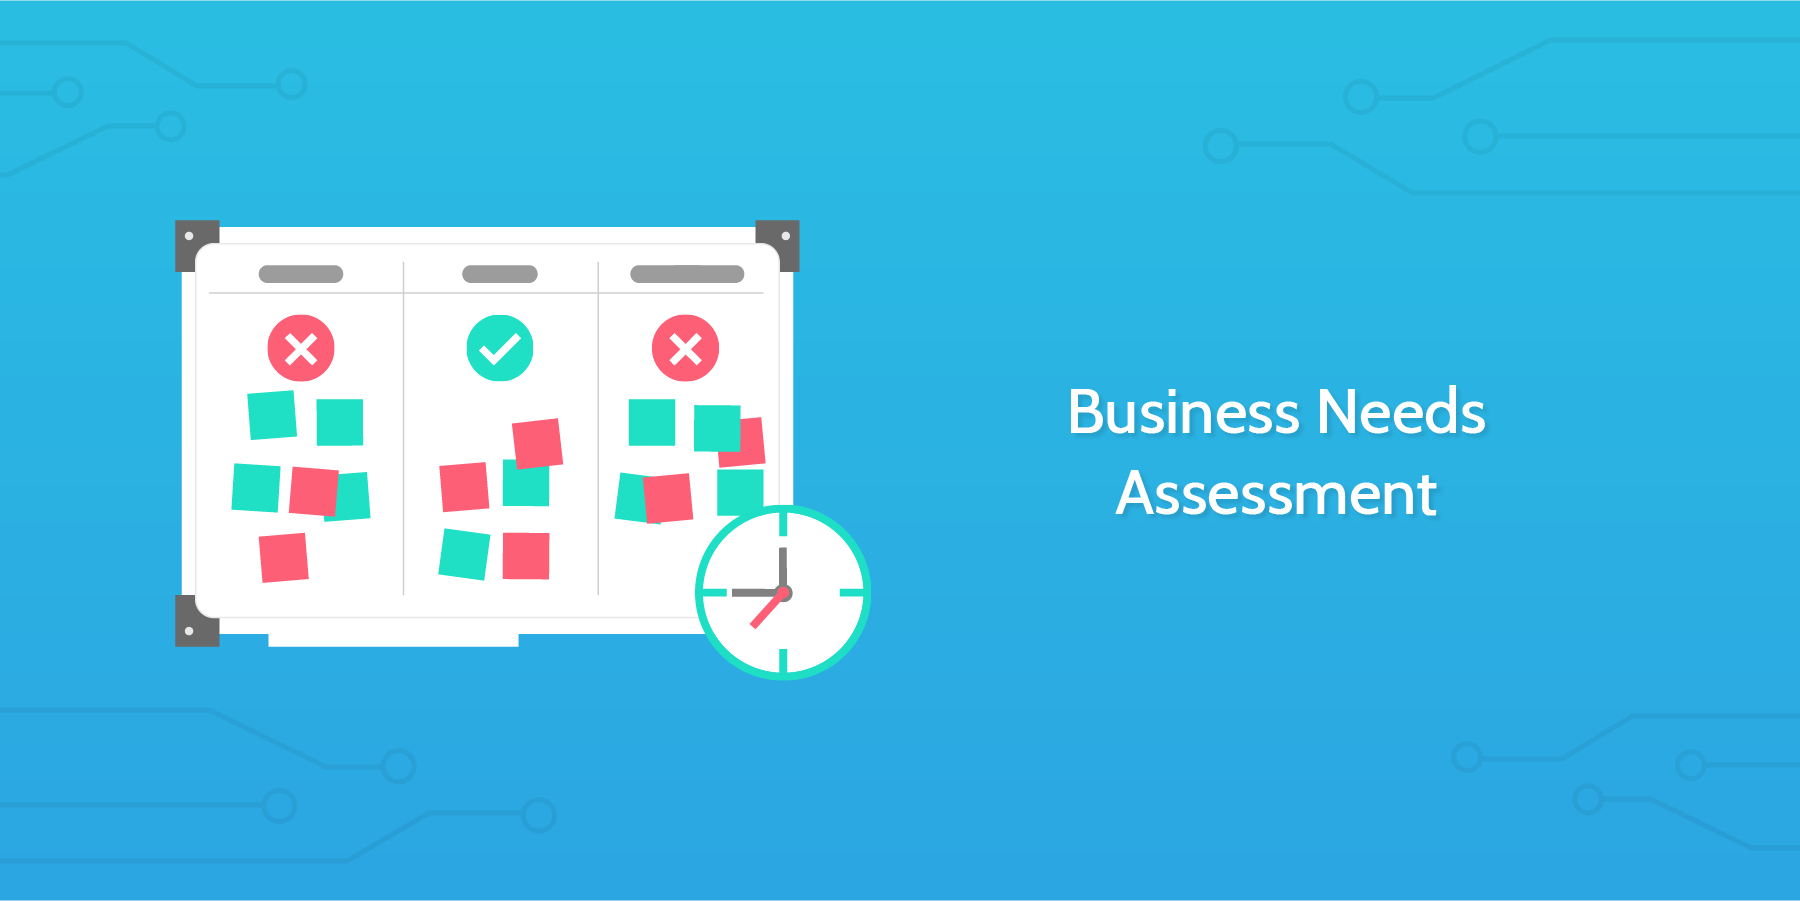 Introduction to the Business Needs Assessment Template: